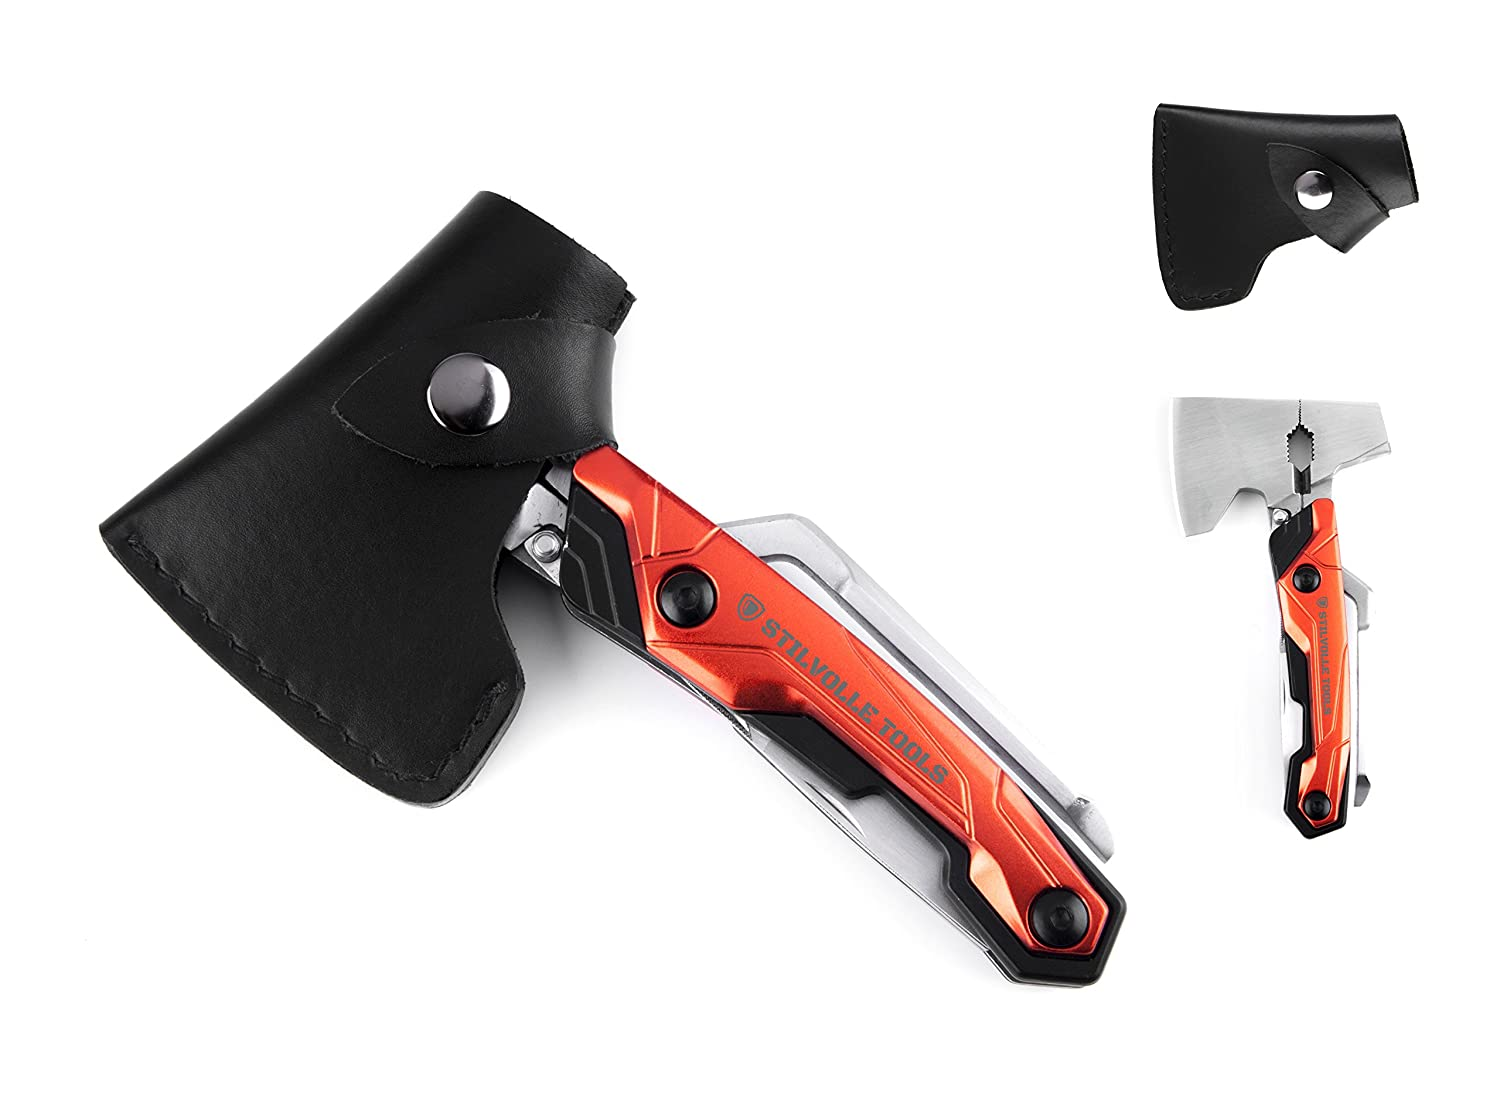 Stilvolle tools Axe 9 ax with 9-Featured Multi-Tool Hammer, Wrench, Wire Cutter, ax, Bottle Opener, Phillips Screwdriver, Flat-Blade Screwdriver, Nail File, Saw, Knife